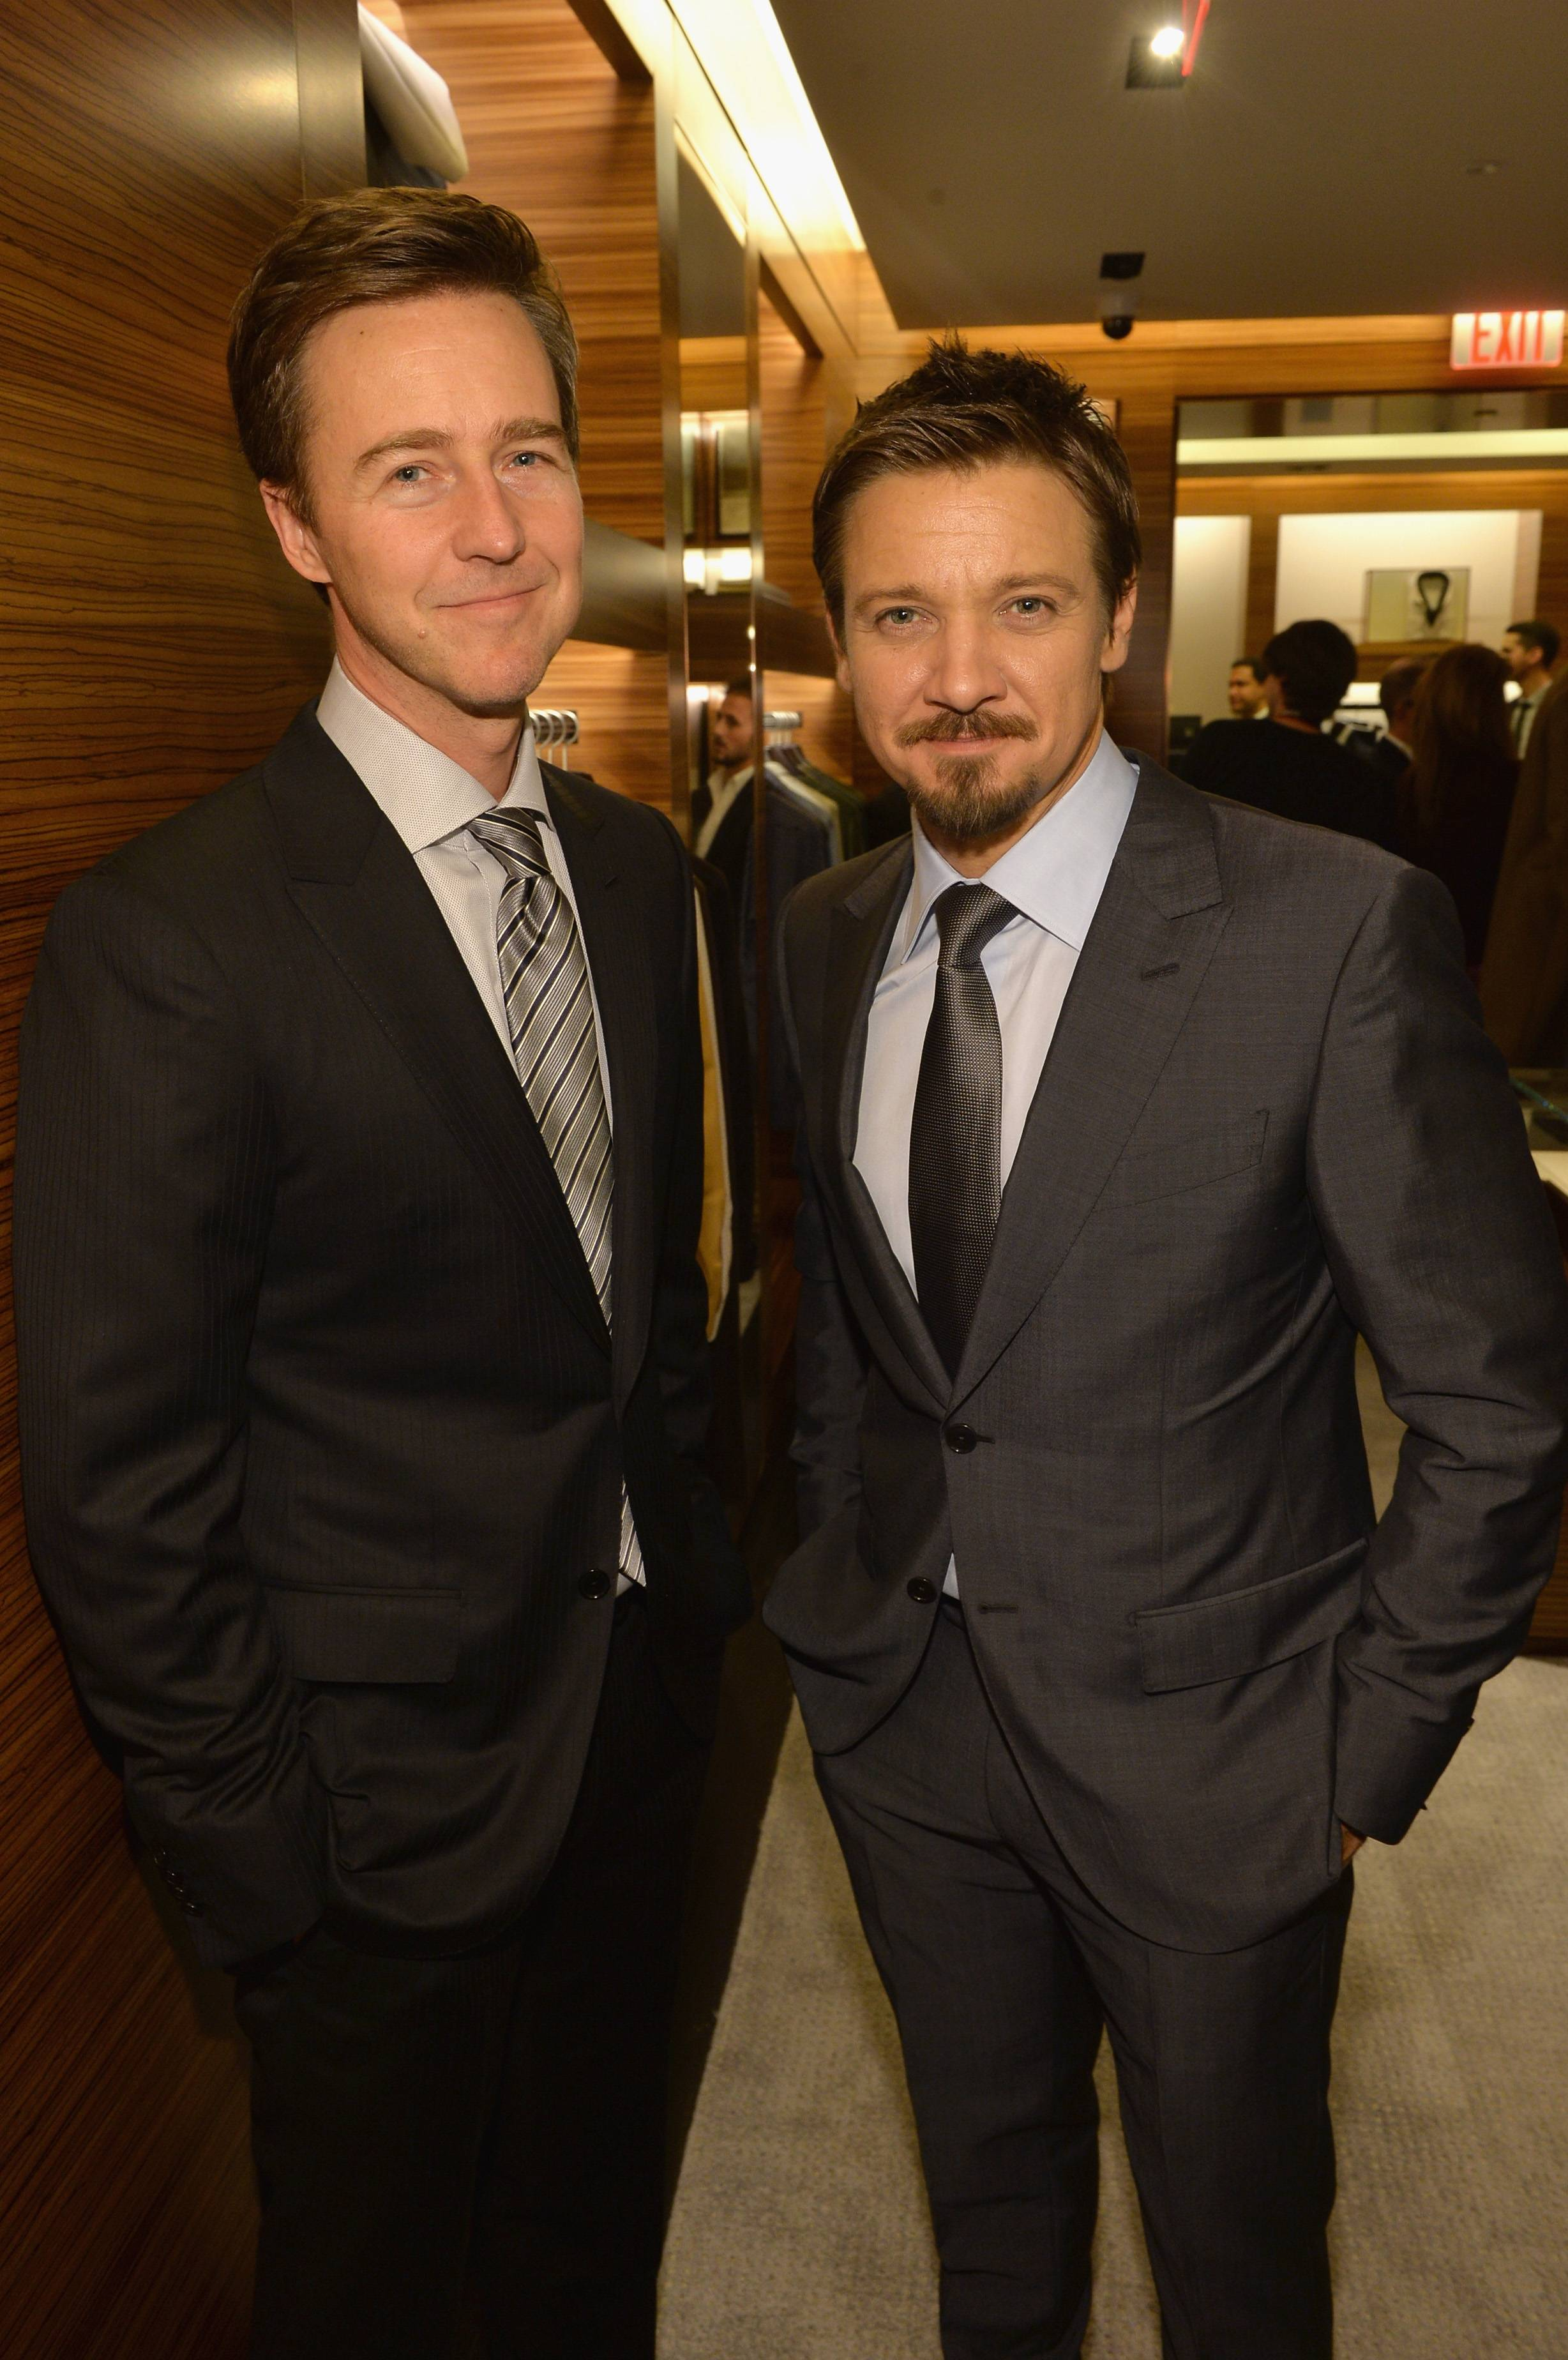 Ermenegildo Zegna Global Store Opening Hosted By Gildo Zegna And Stefano Pilati